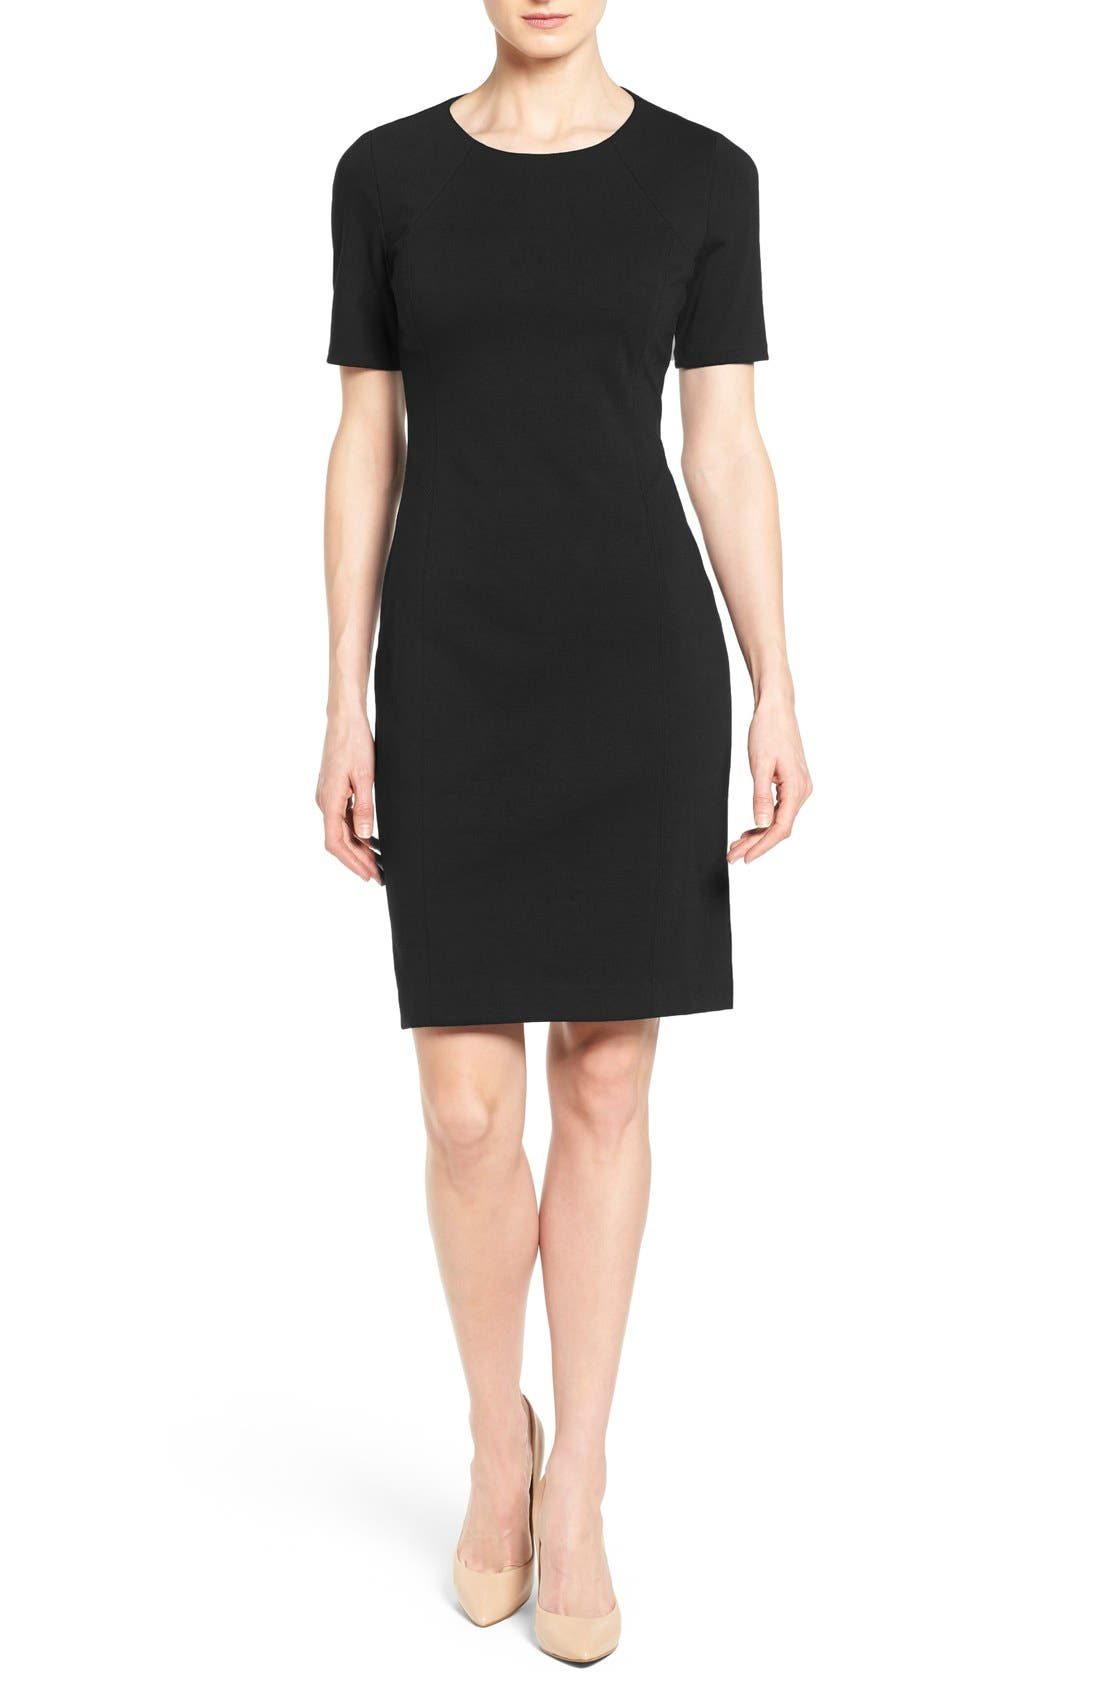 T Tahari 'Judianne' Short Sleeve Sheath Dress